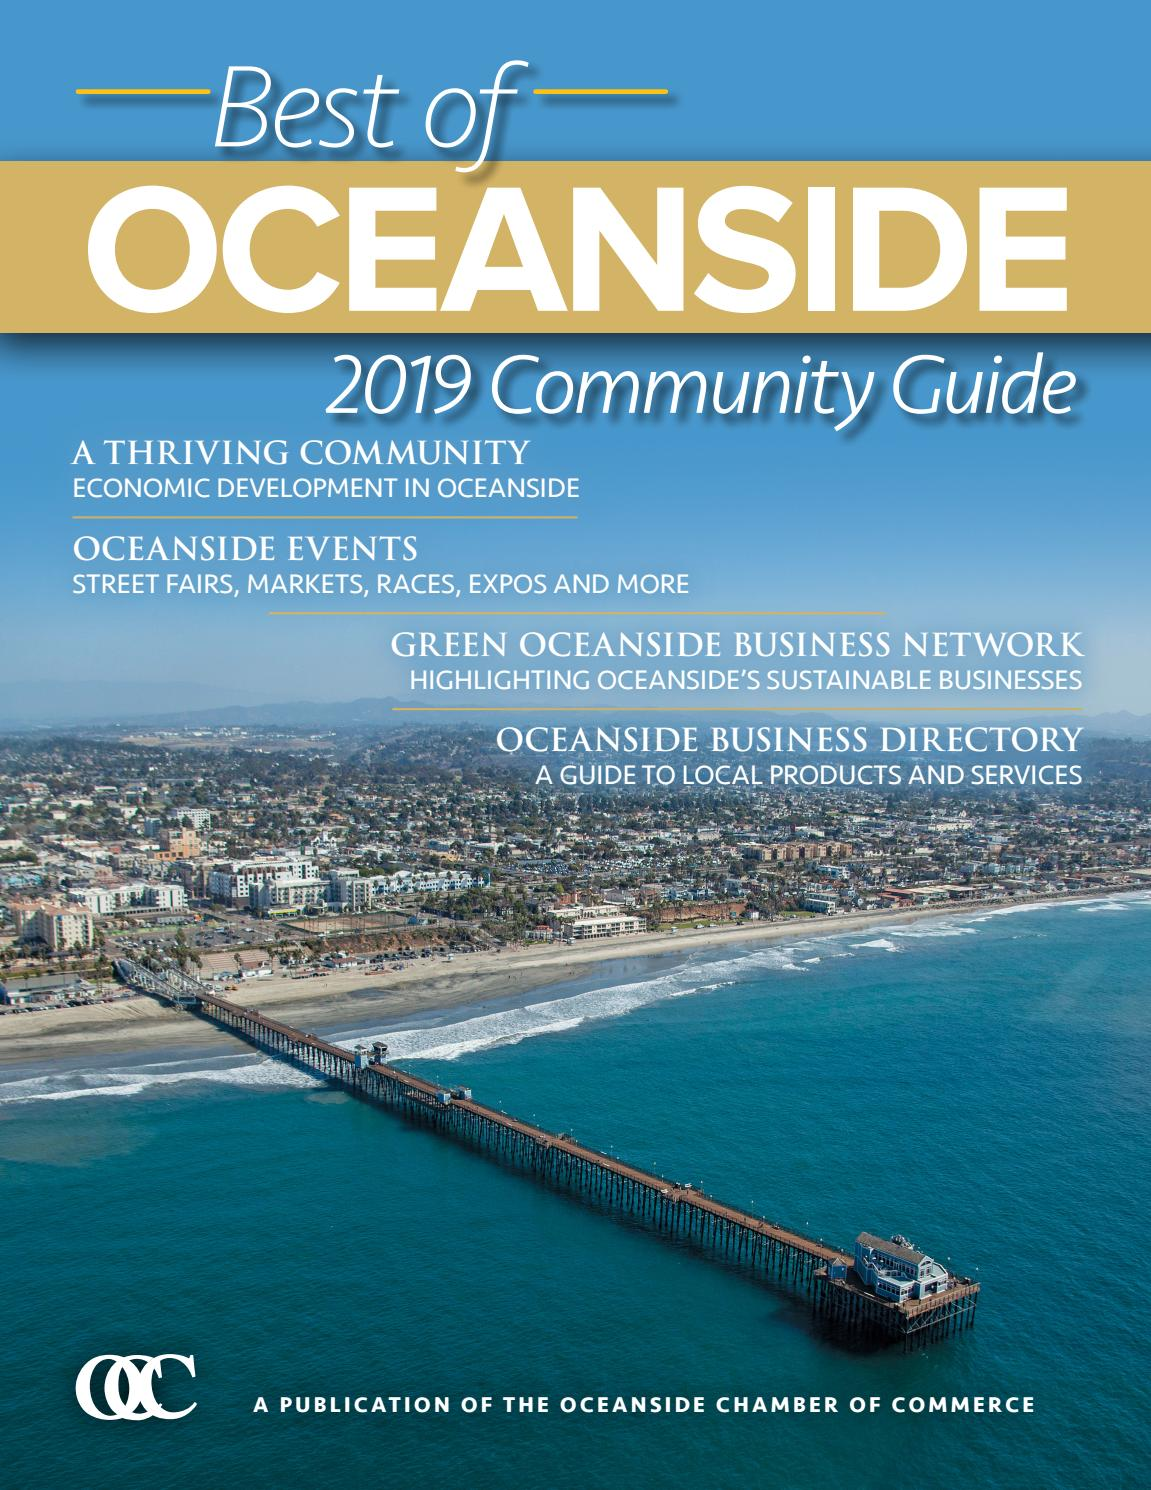 310870f92b 2019 Best of Oceanside Community Guide by Oceanside Chamber of Commerce -  issuu